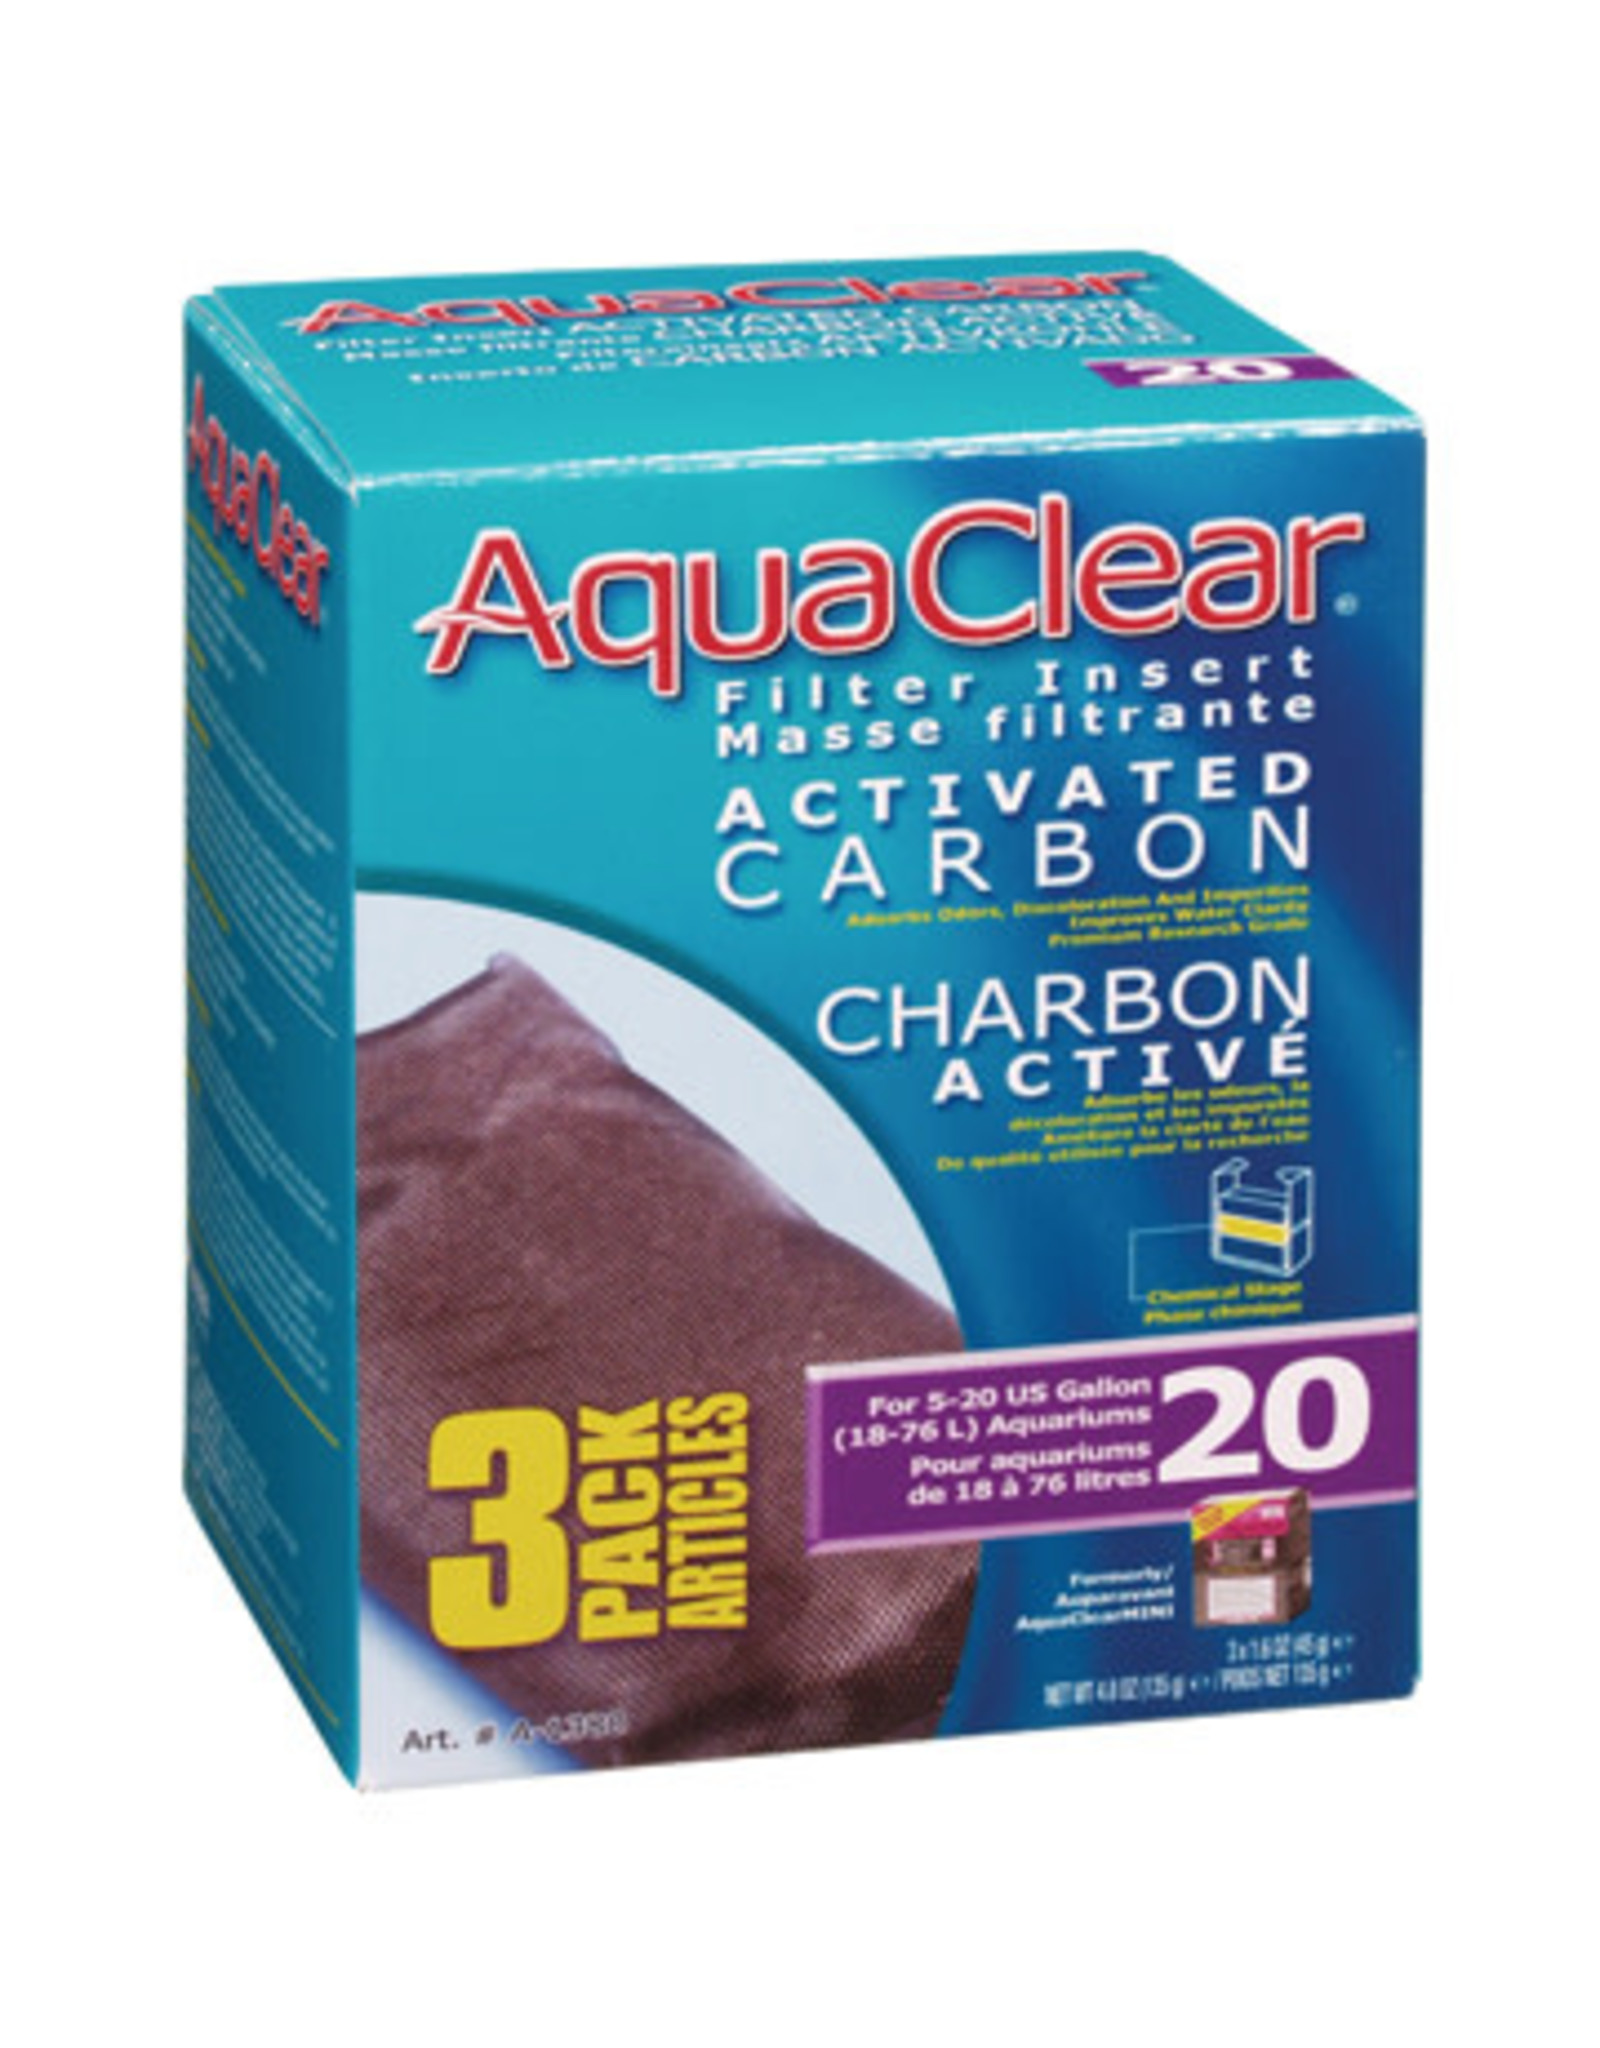 AquaClear AquaClear 20 Activated Carbon Filter Insert 3 Pack 135g